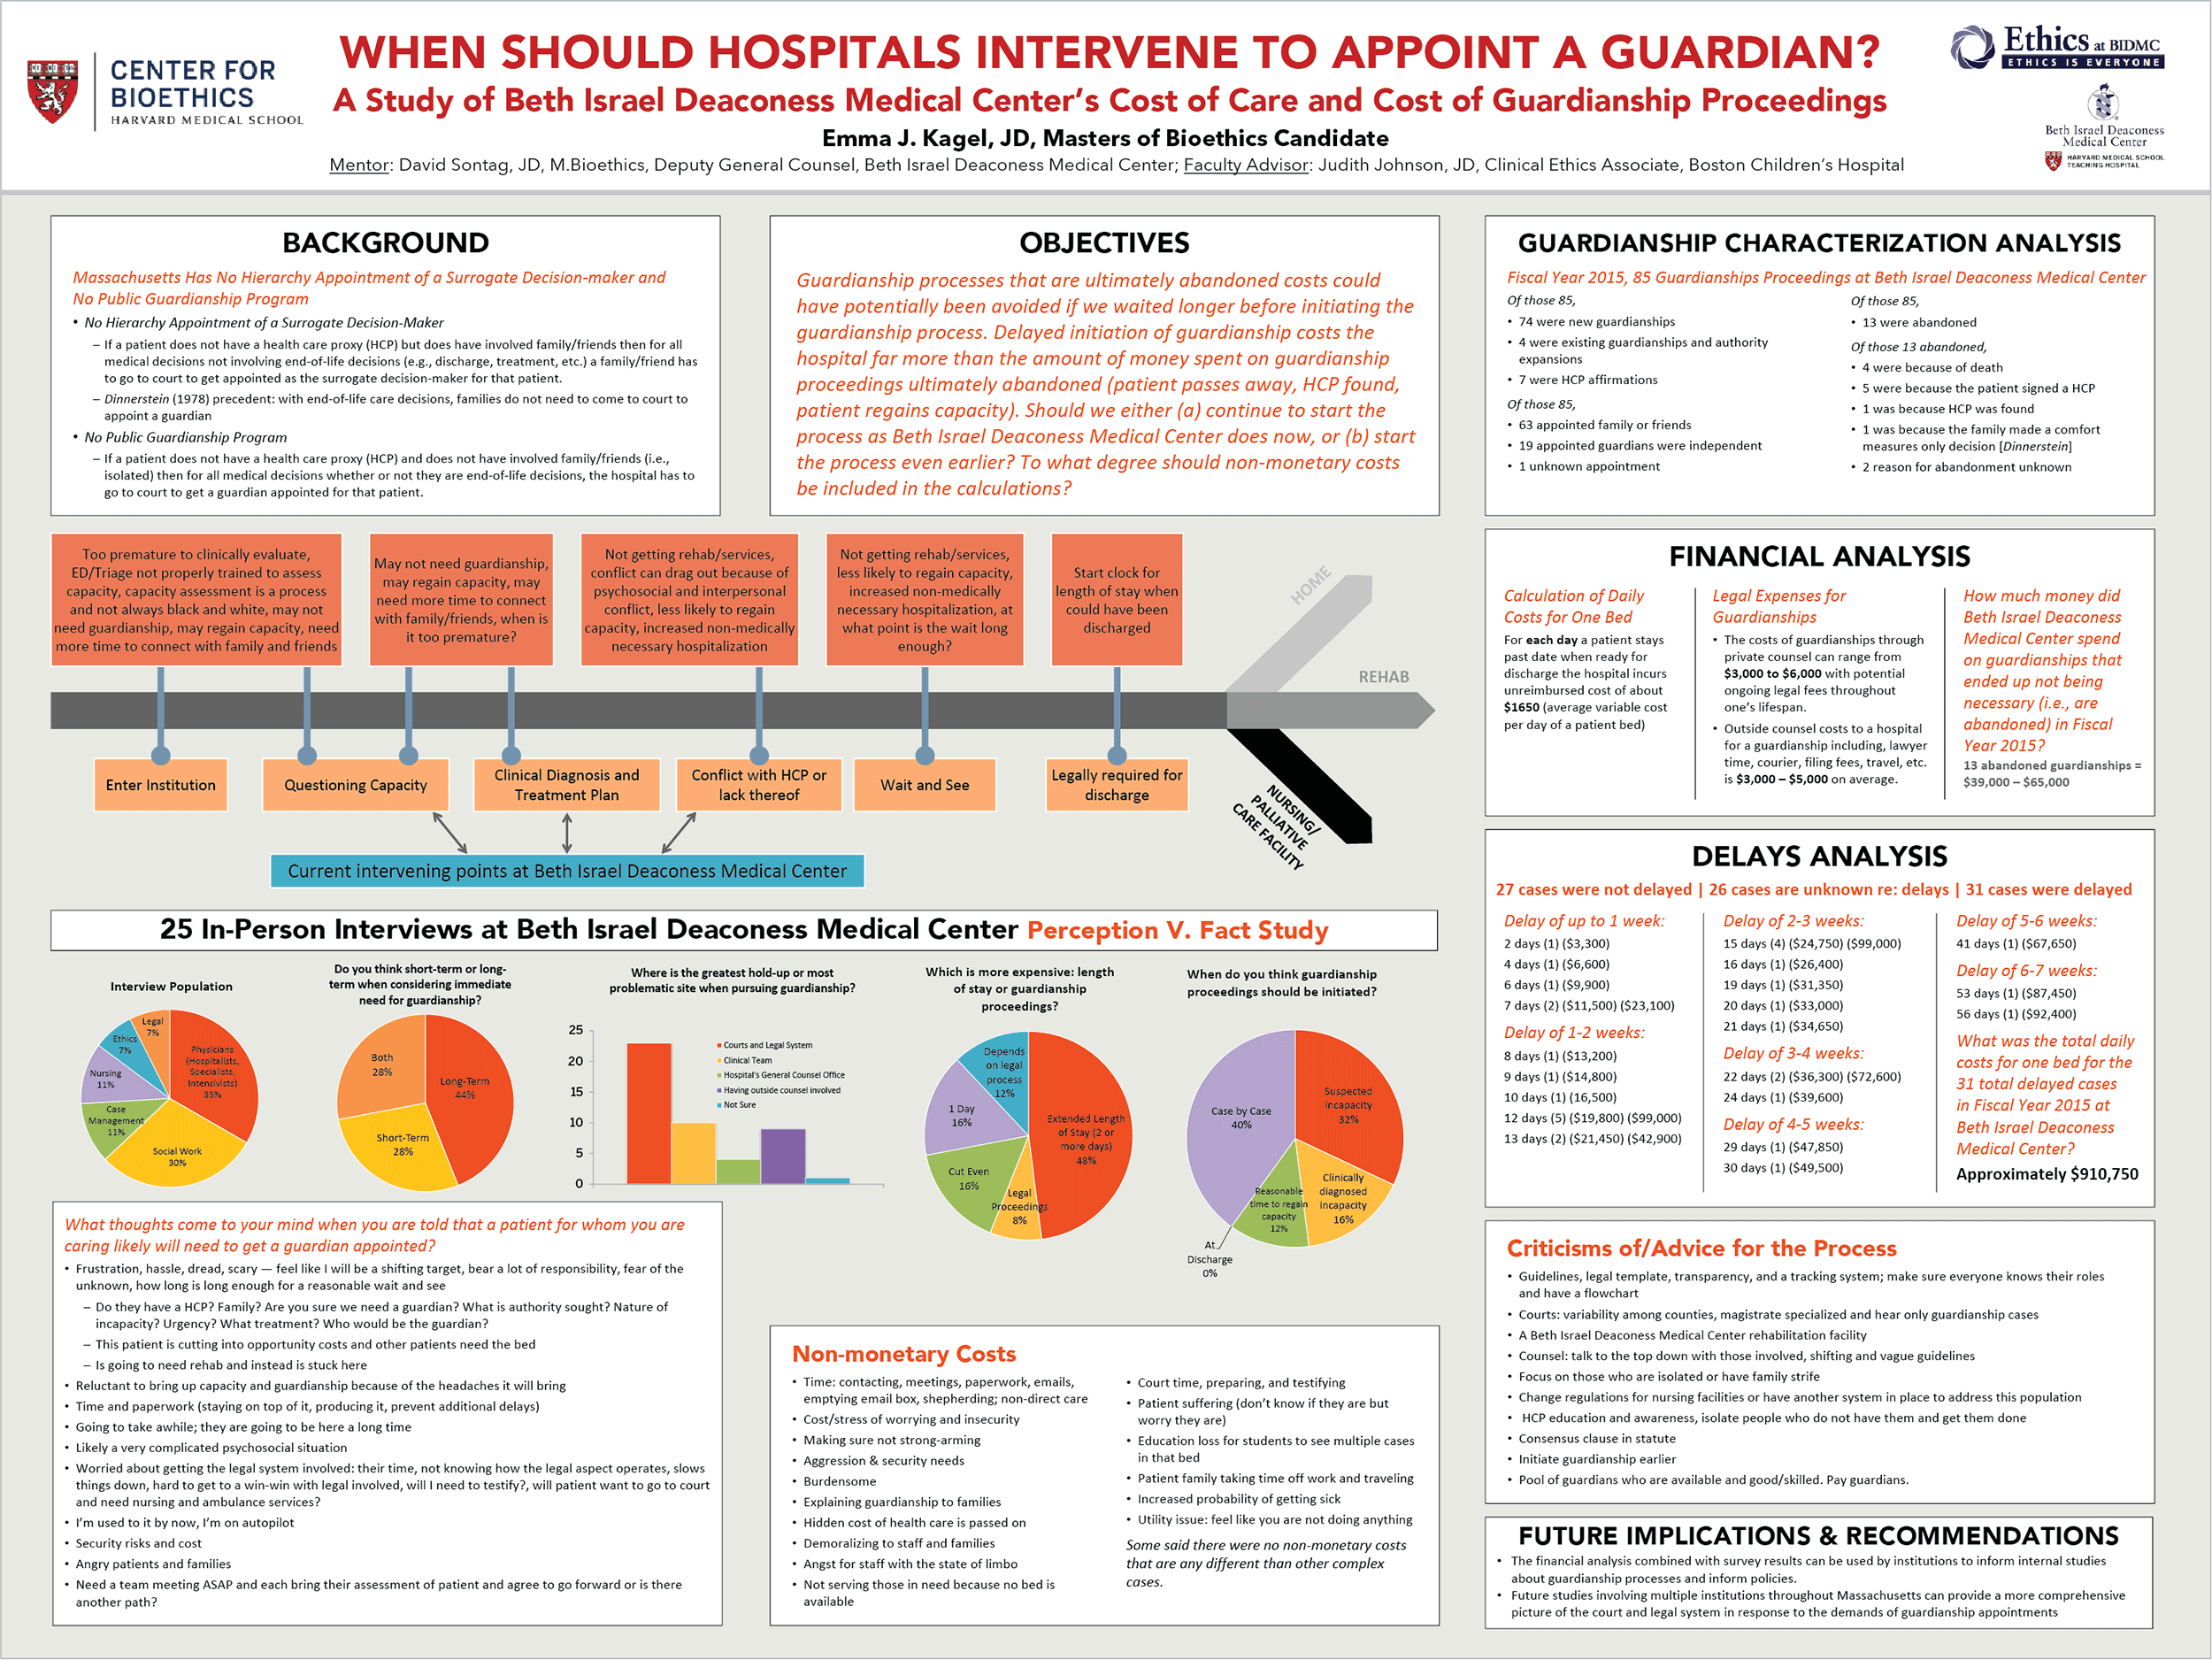 Research poster design by Virtual Apiary for Harvard Bioethics Kagel